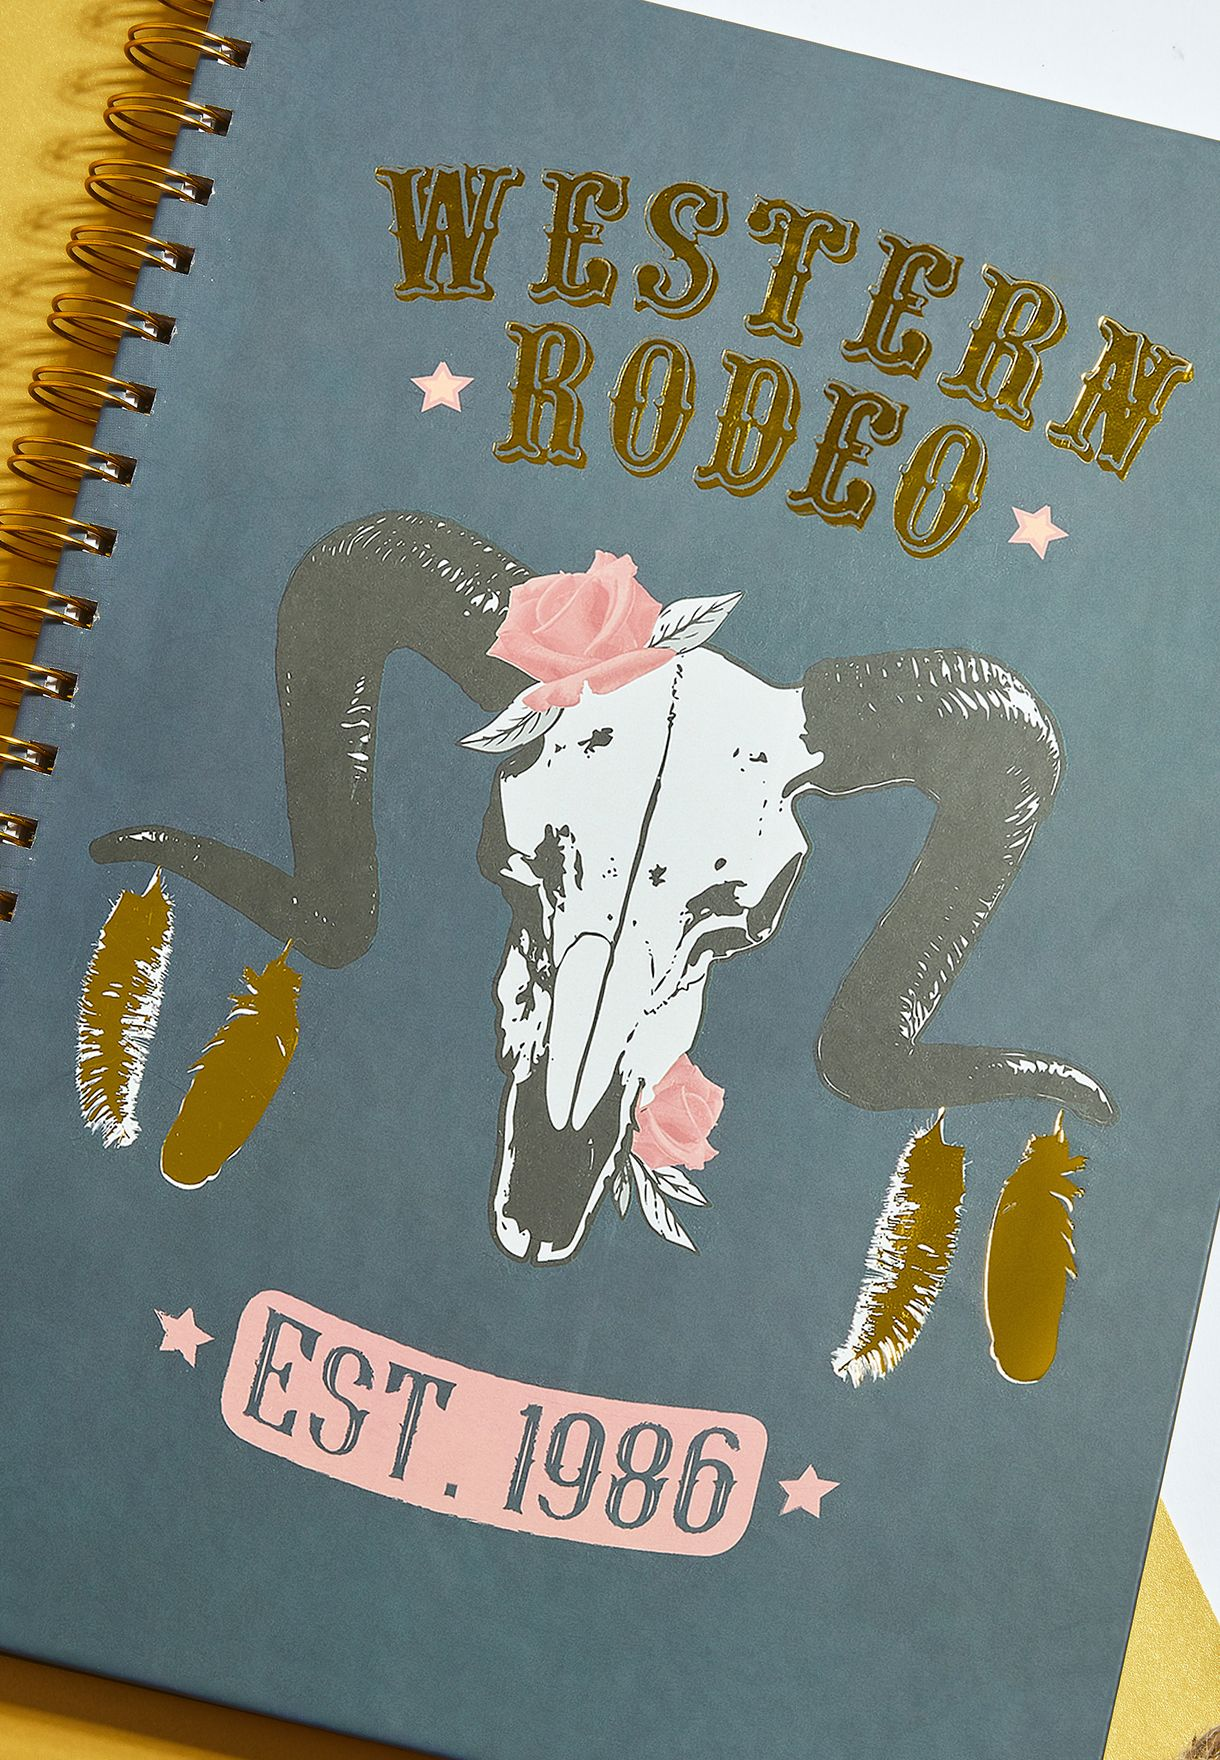 A4 Western Rodeo Notebook